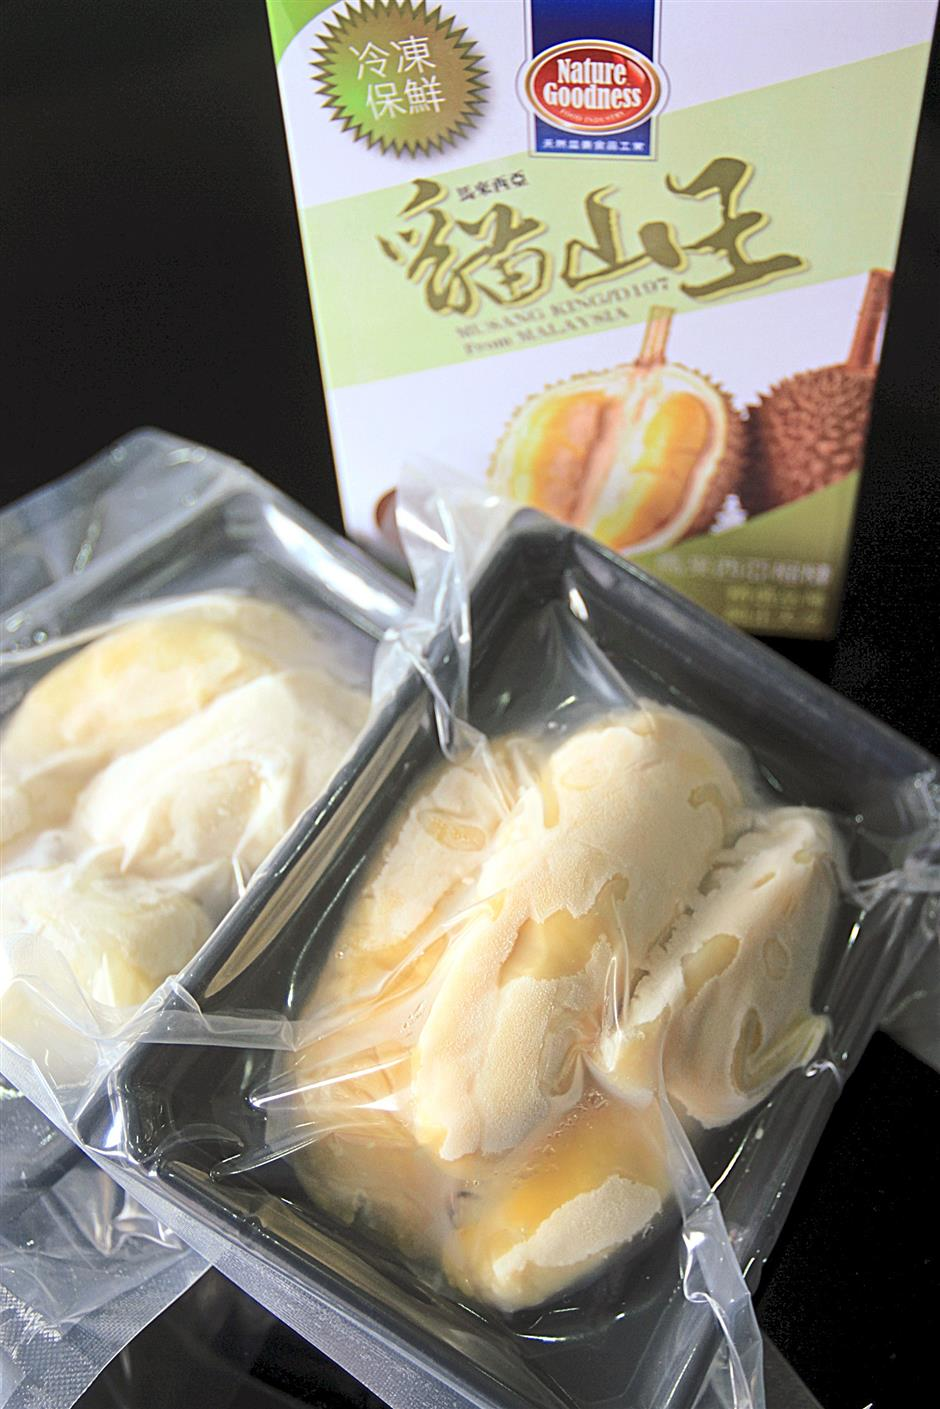 Customers in overseas markets no longer have to deal with the prickly shells of the durian.